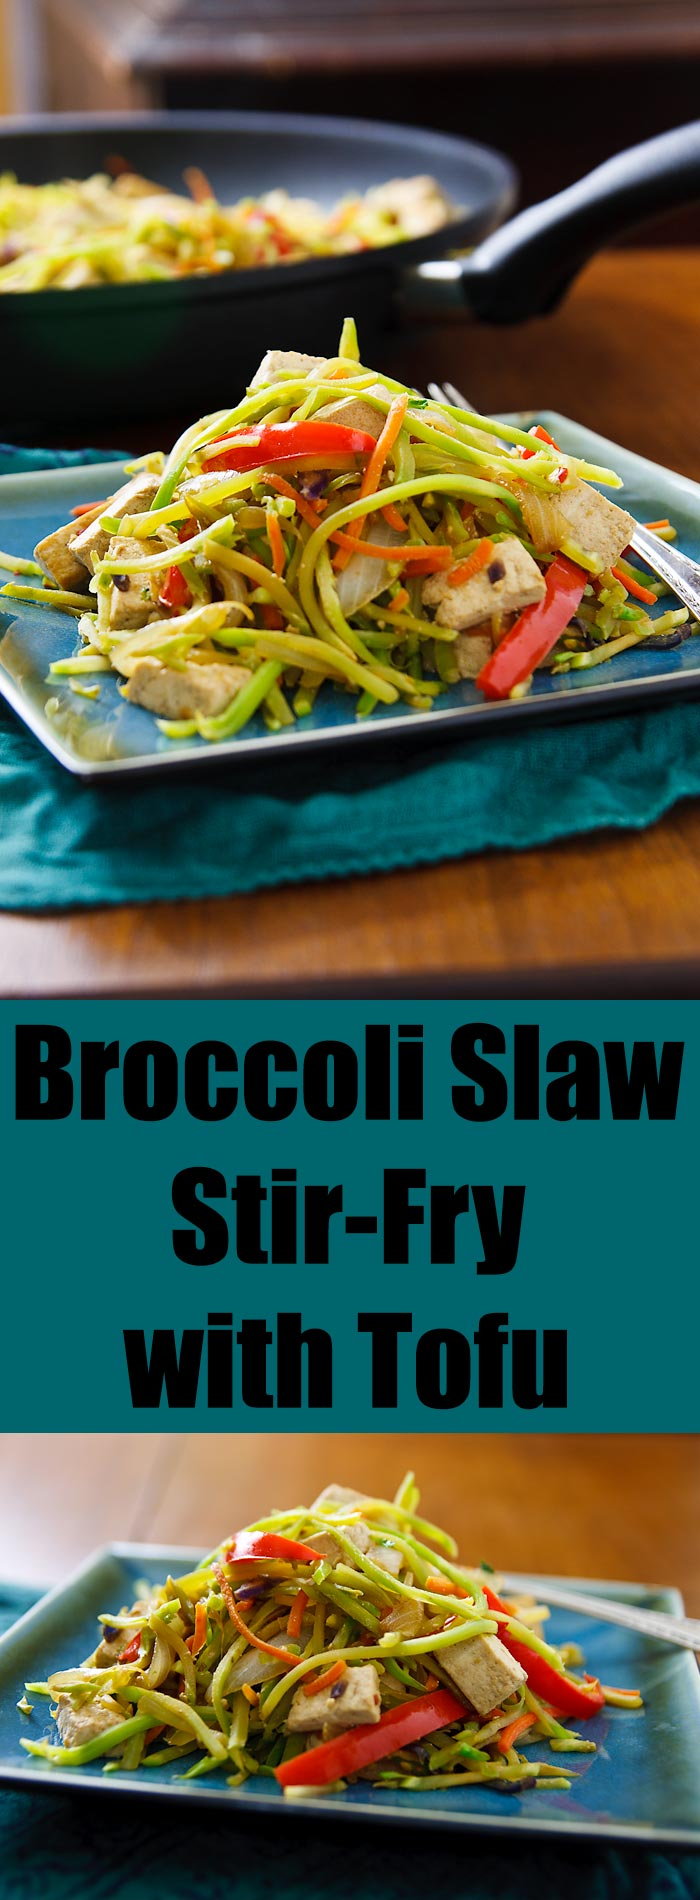 Packaged broccoli slaw makes a quick and easy stir-fry and, with the addition of tofu, a filling but low-fat vegan meal.